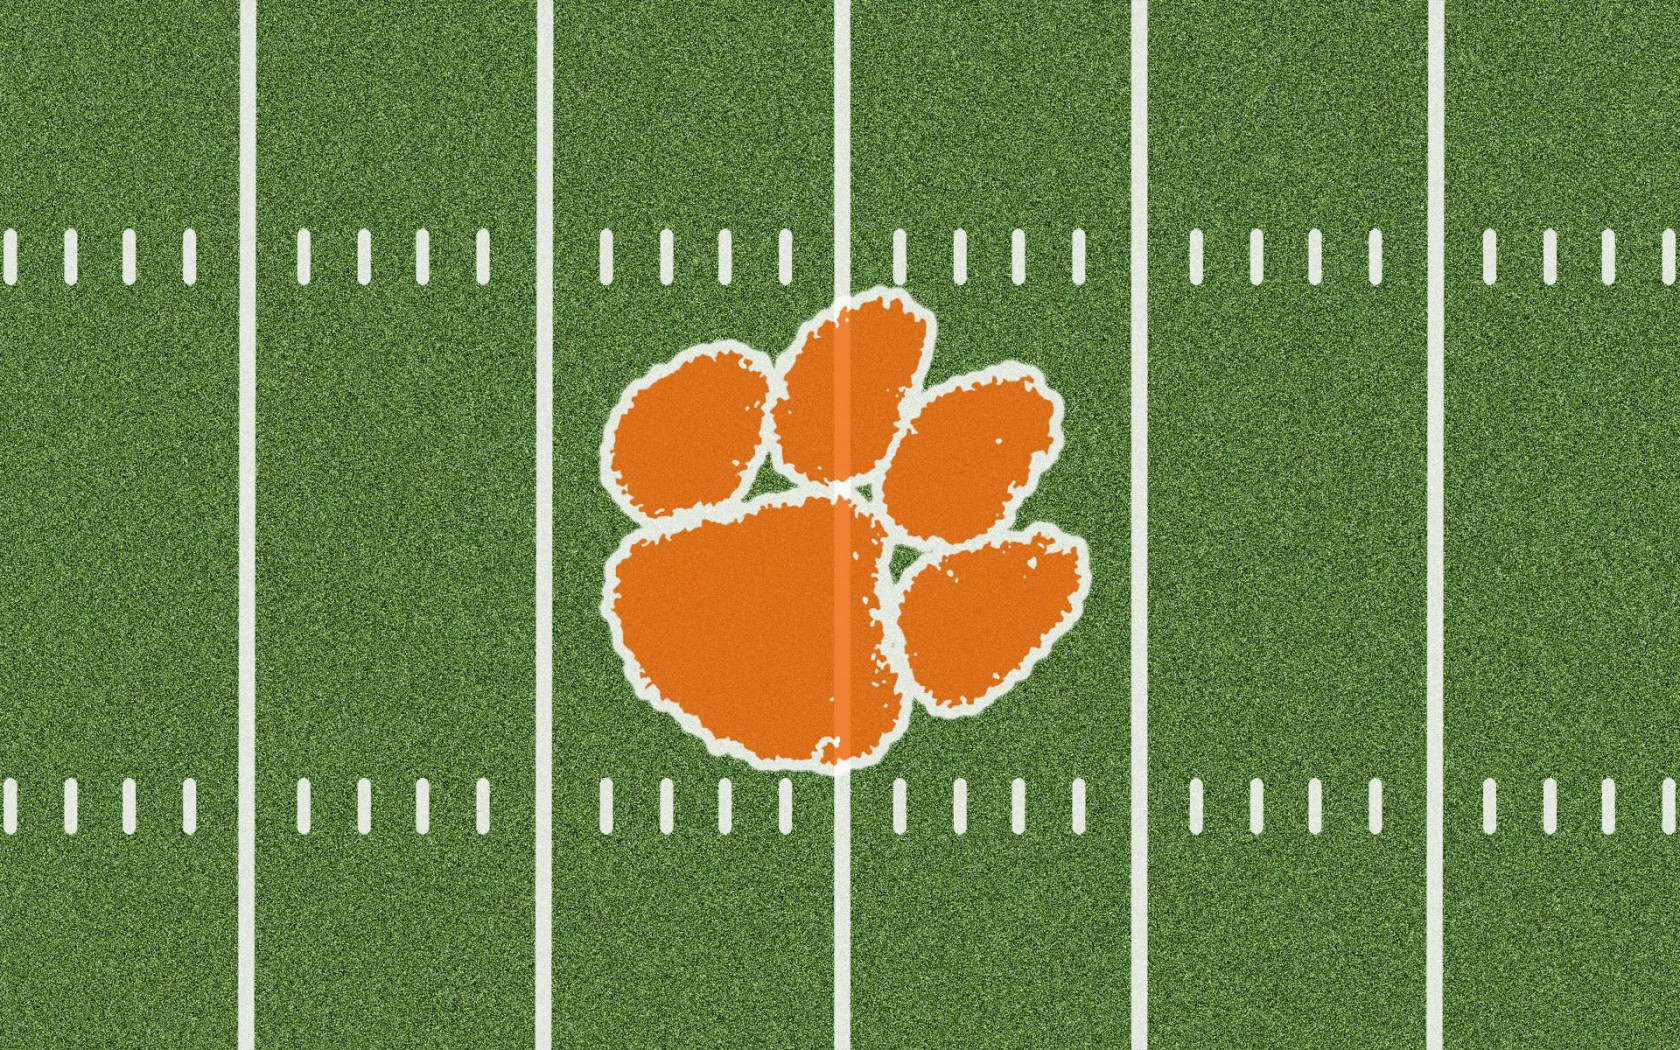 - Free WallpaperSafari Wallpapers Clemson